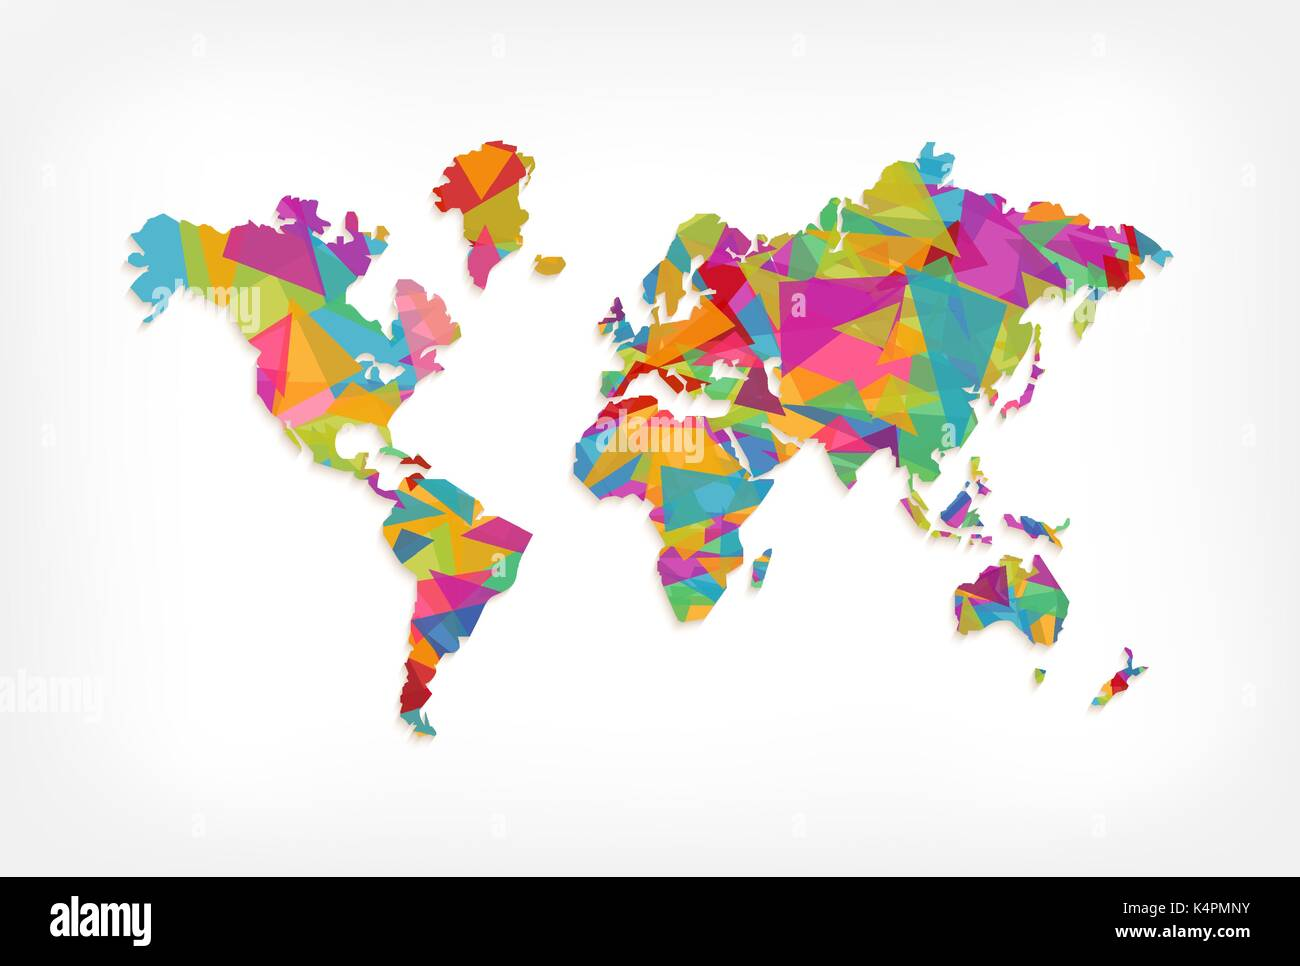 Abstract world map illustration template made of colorful triangle abstract world map illustration template made of colorful triangle shapes modern geometric planet silhouette eps10 vector gumiabroncs Gallery